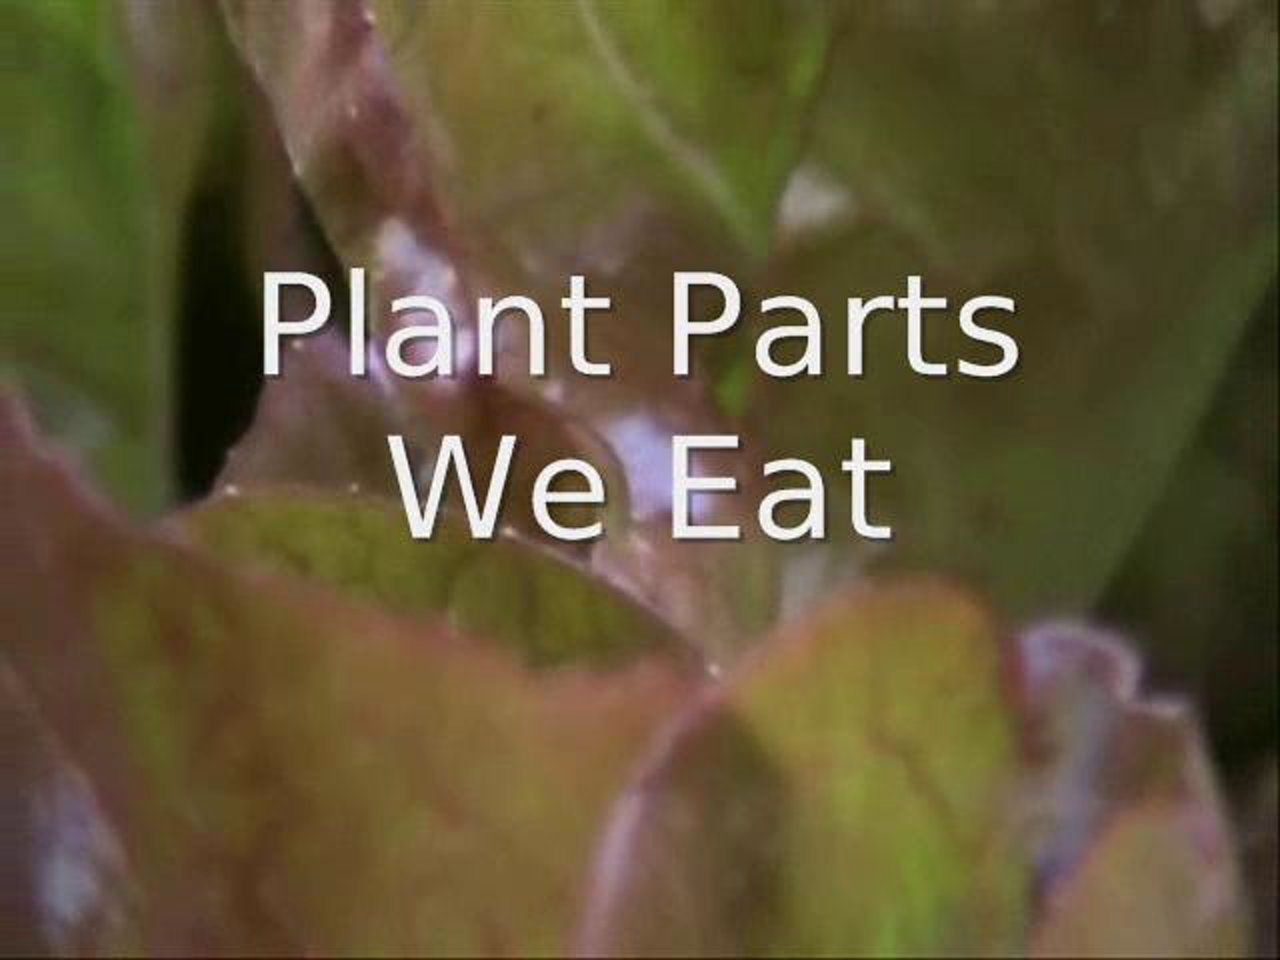 This Is Plant Parts We Eat By Kstatehe On Vimeo The